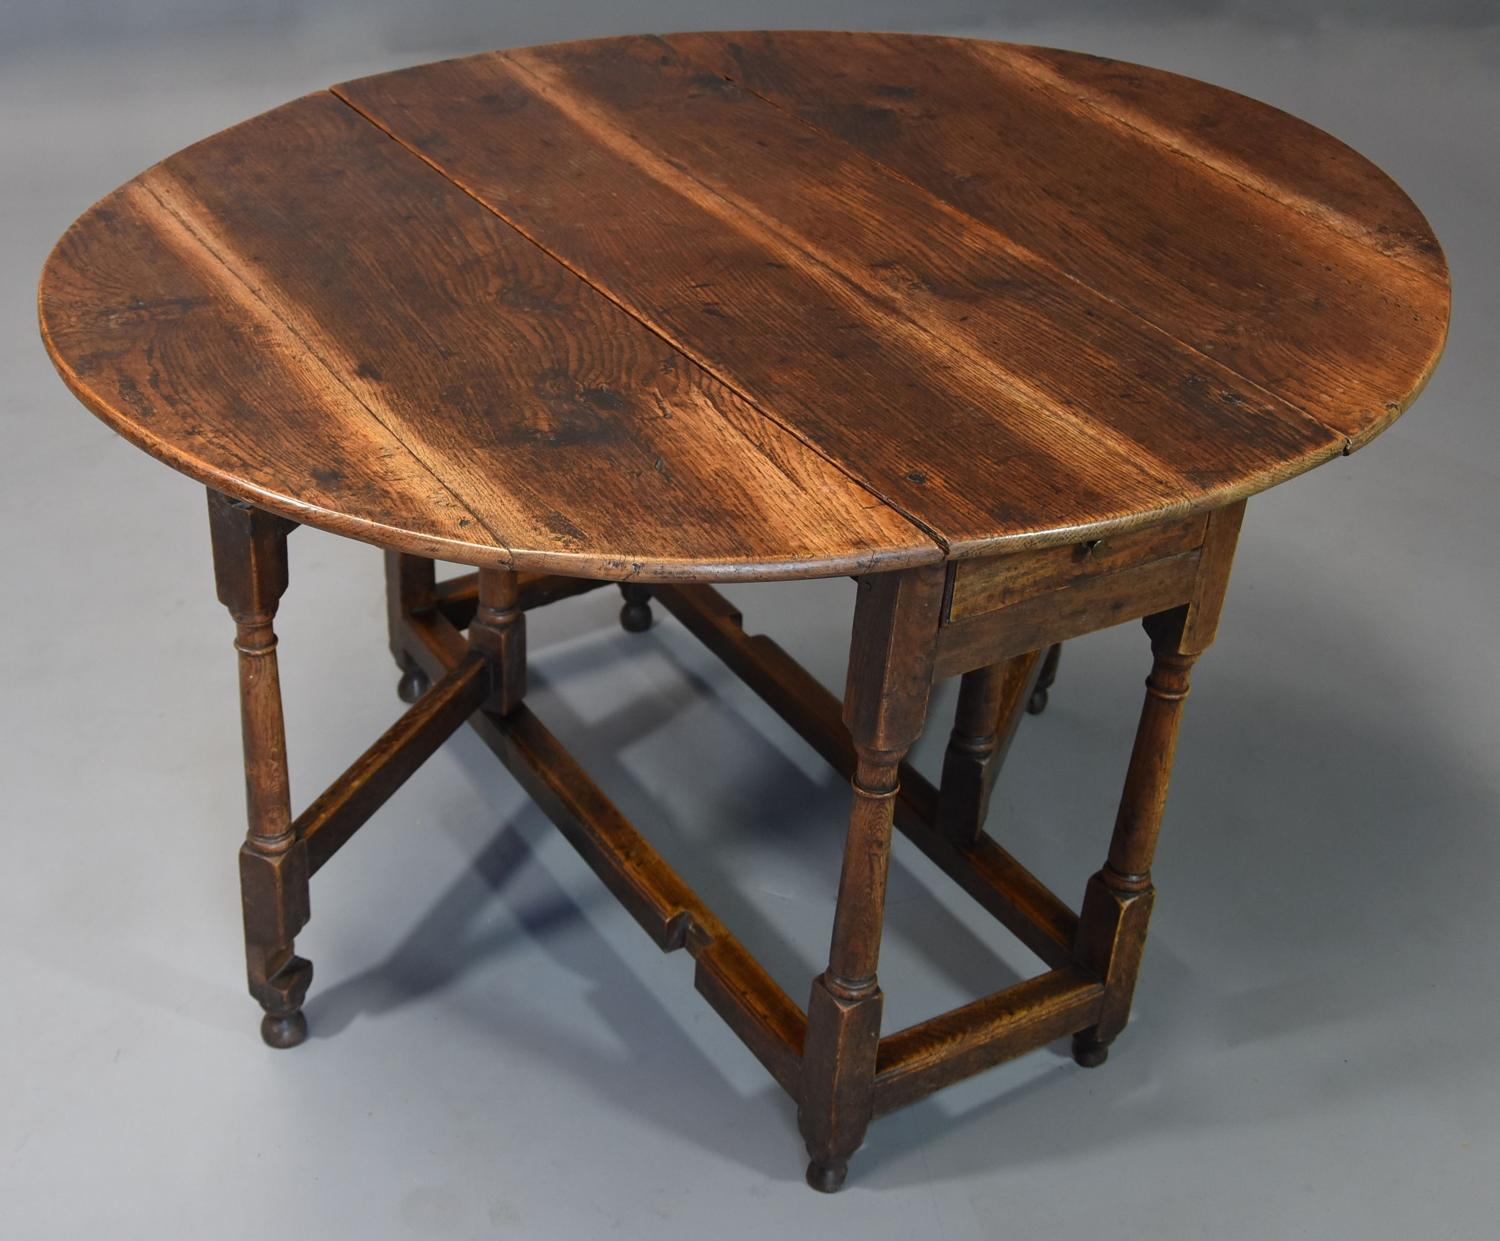 Early 18th century oak gateleg table with superb original patina